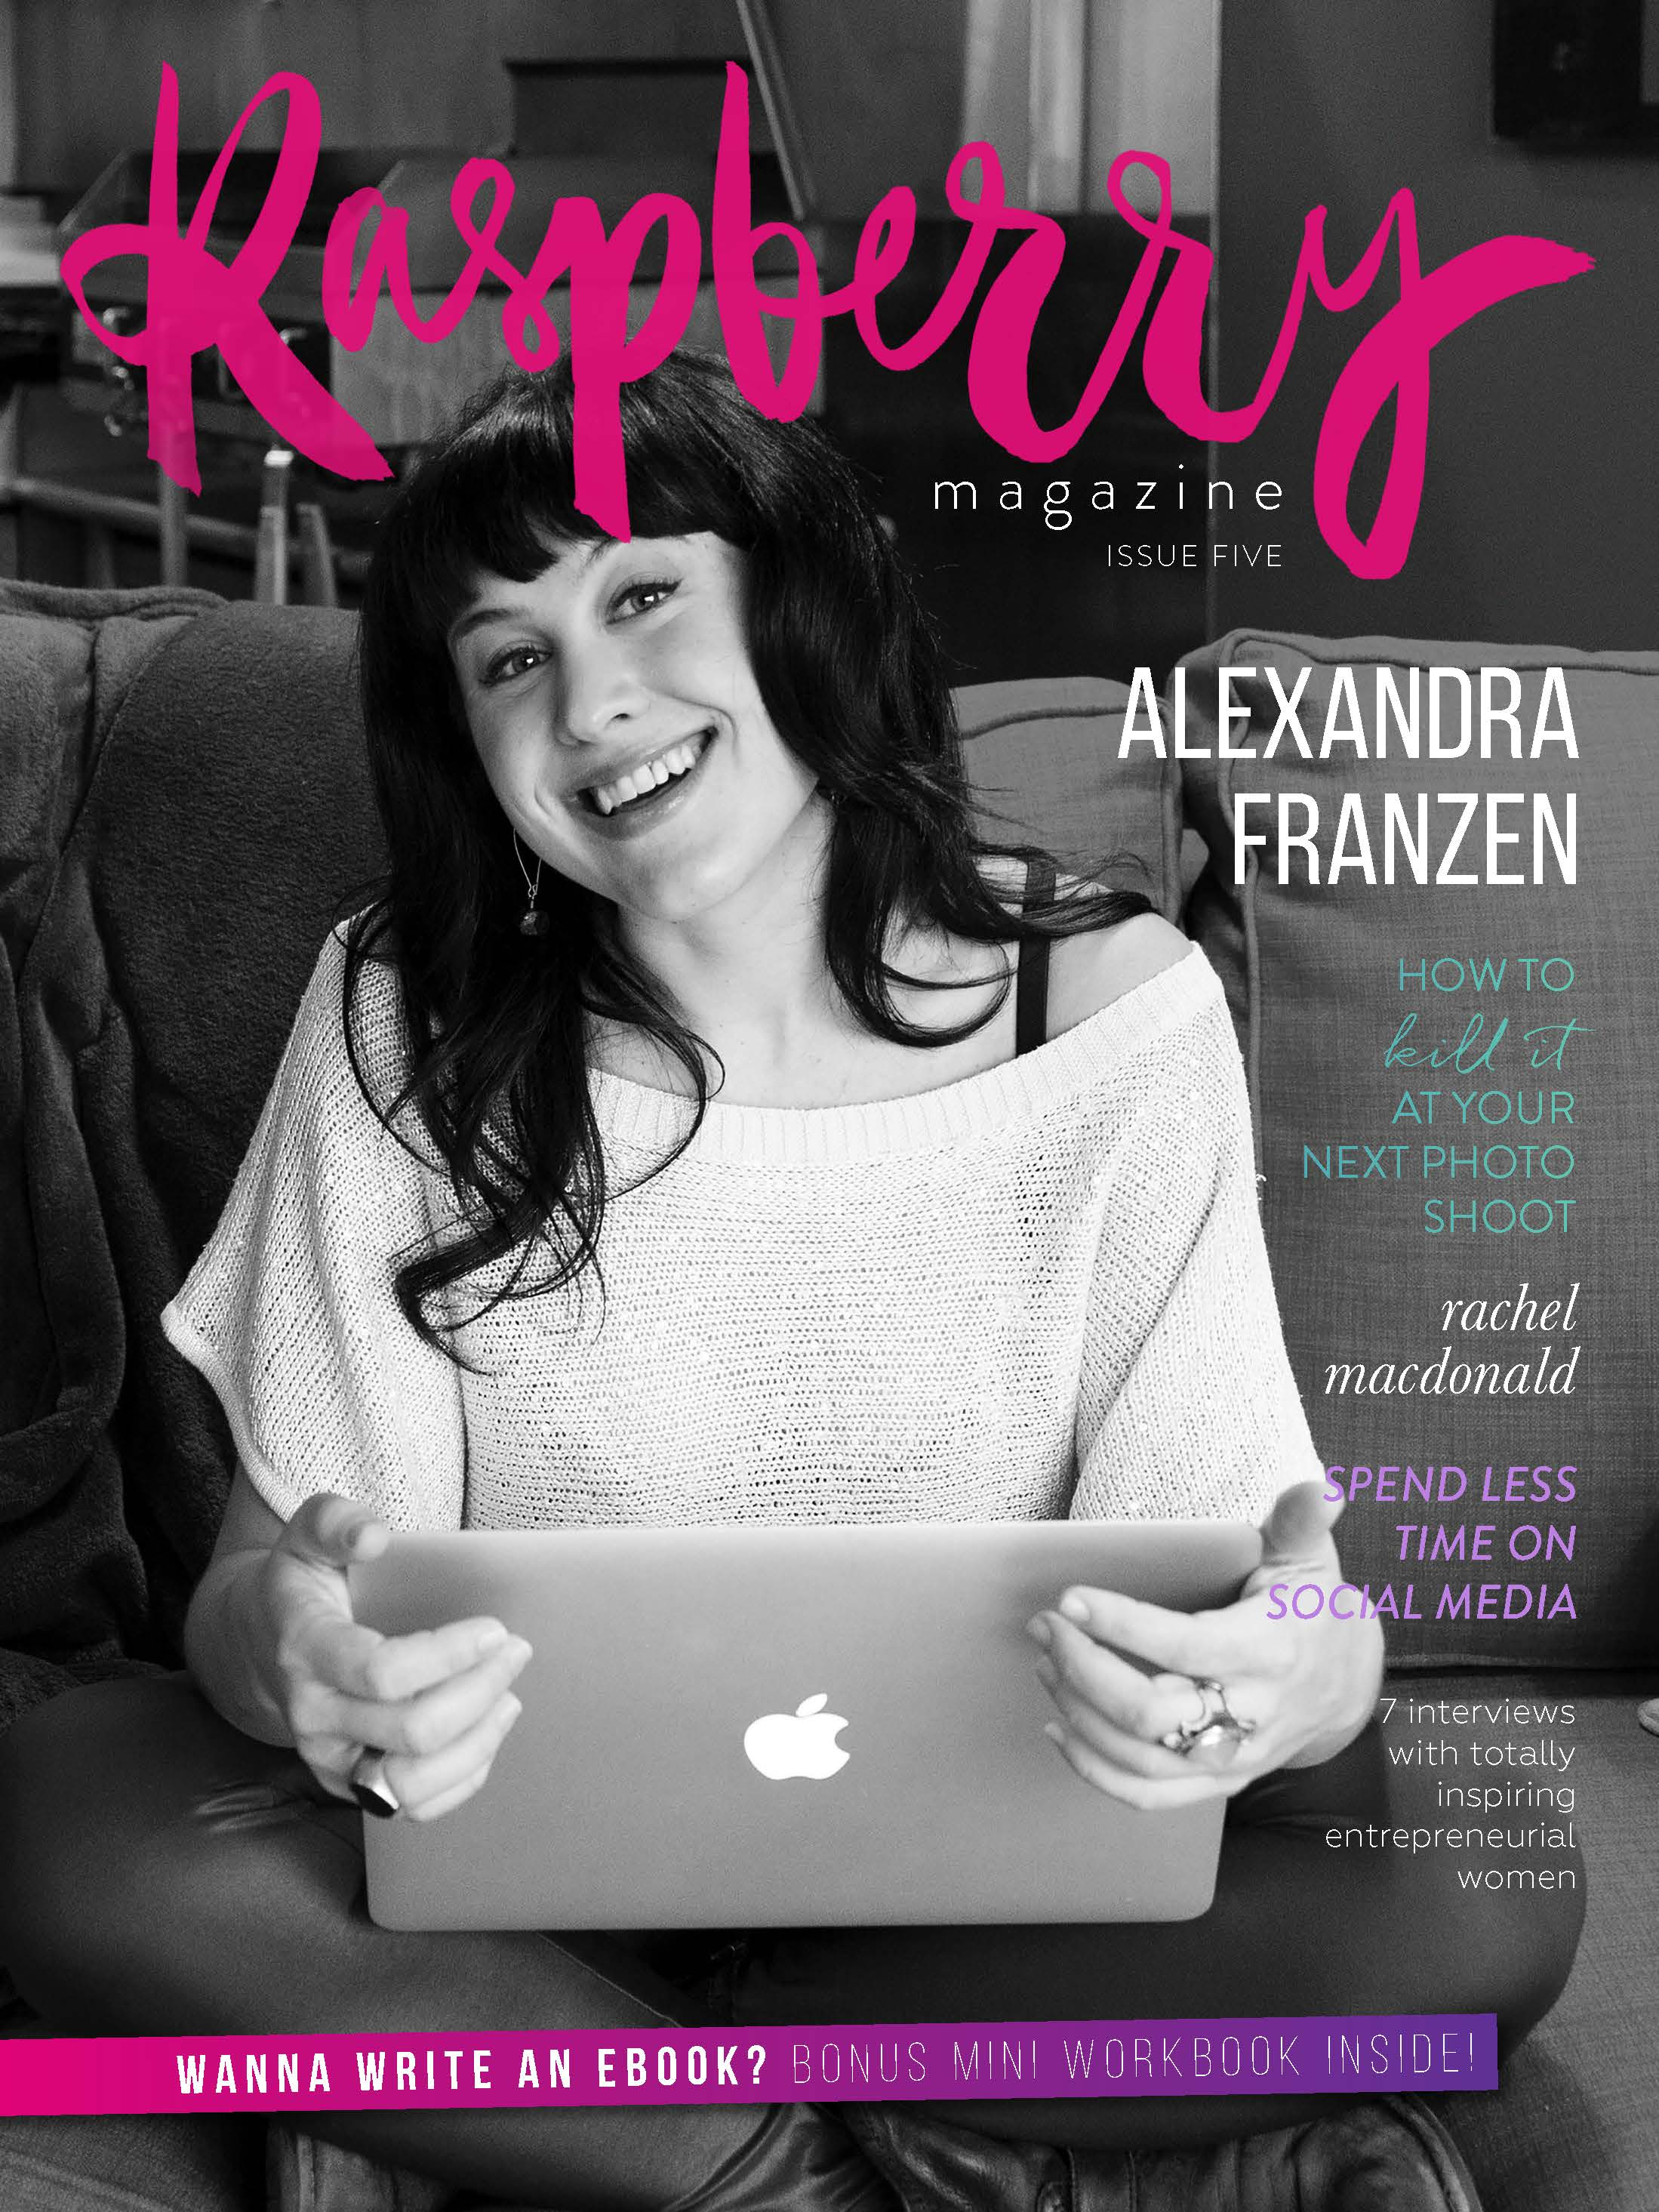 ISSUE FIVE  ( download here )   COVER STORY // An interview with communications agency creatrix and blogger Alexandra Franzen where we talk all things business, tenacity, and becoming unstoppable.   Oh, Mexico!  Kate and Hannah, two Aussie ex-pats with a flair for design, start a gorgeous homewares business from Mexico City.   Five ways to spend less time on social media and more time creating rad art , by Chloe Thea.   How to kill it at your next photo shoot , by Michelle Jakubenko (Eyes of Love).   Wilder and free : an interview with spiritual business maven and owner of The Fifth Element Life, Sarah Wilder.   Top ten ways to start your day: for busy entrepreneurs who want to stay productive , by Kate Crocco.   Live well, travel often, life's good:  an interview with Lynn Gilmartin - world poker tour TV presenter, juice bar founder, traveller and budding actress.   Kindred beauty:  an interview with Natalie Sellars, the toxin-free beauty expert.   Rachel Macdonald : spirited speaker, author, blogger and creator of the Bright-Eyed and Blog-Hearted eCourse.   Your core light : an interview with ethical jewellery designer, Fabienne Costa.   The Freedom Project:  a peek into the story behind this generous movement, by Anna Lozano.   How to care for yourself as an introverted business owner , by Kathryn Hall.   What is an eBook, and how can it help my business?  By Alana Wimmer (that's me!)   PLUS  a bonus mini workbook to help you nut out your ideal eBook idea!